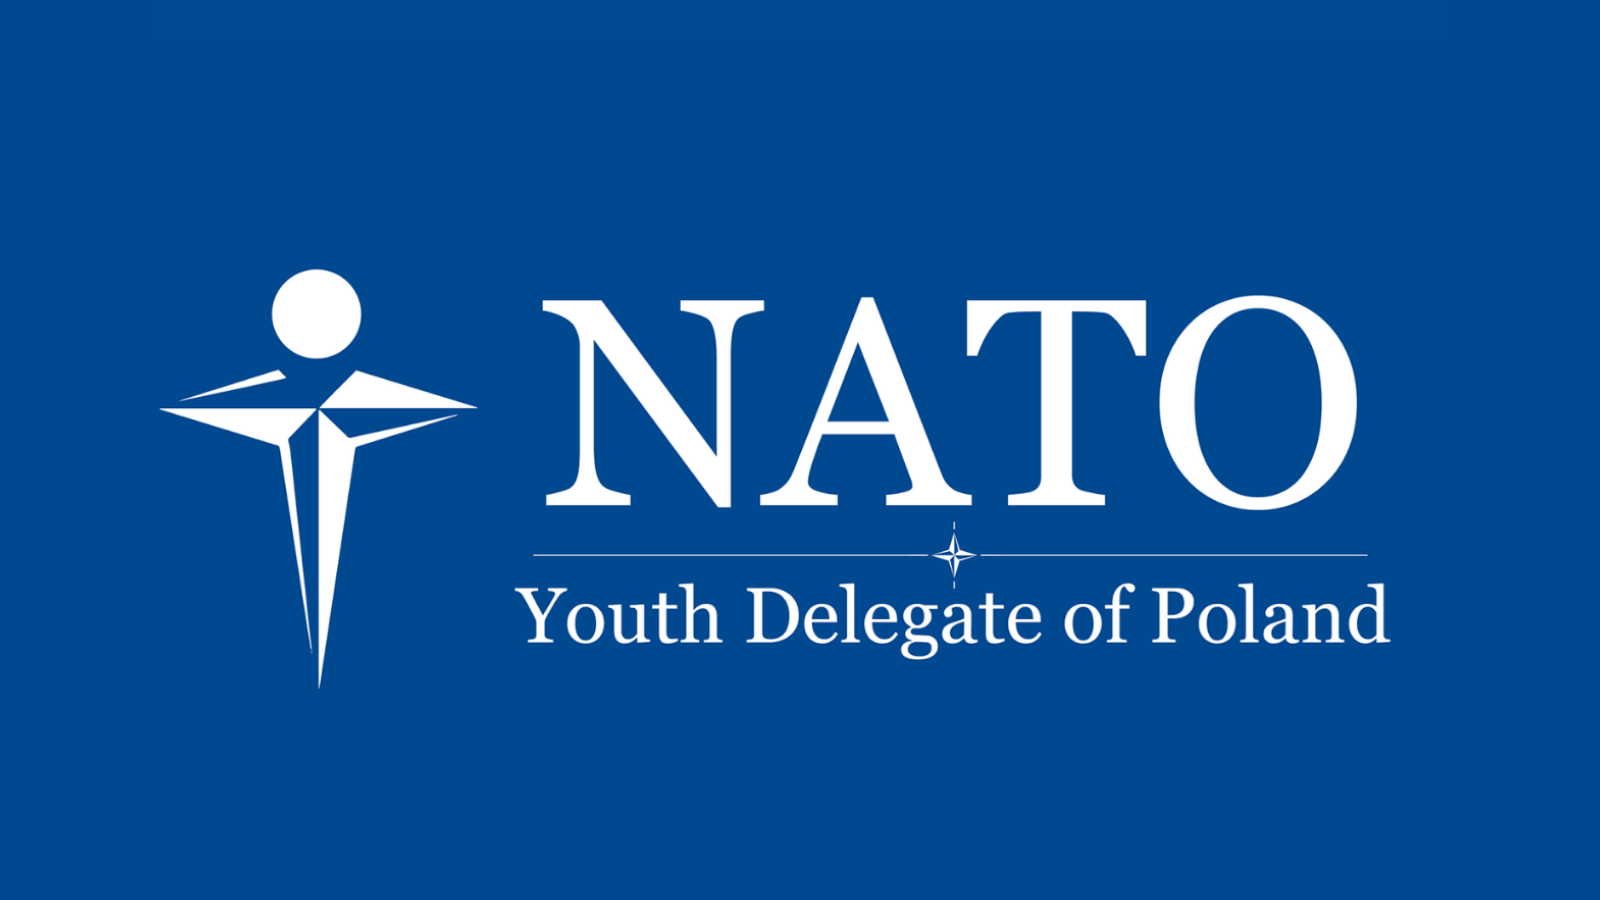 Casimir Pulaski Foundation is a partner of the NATO Youth Delegate of Poland Programme!